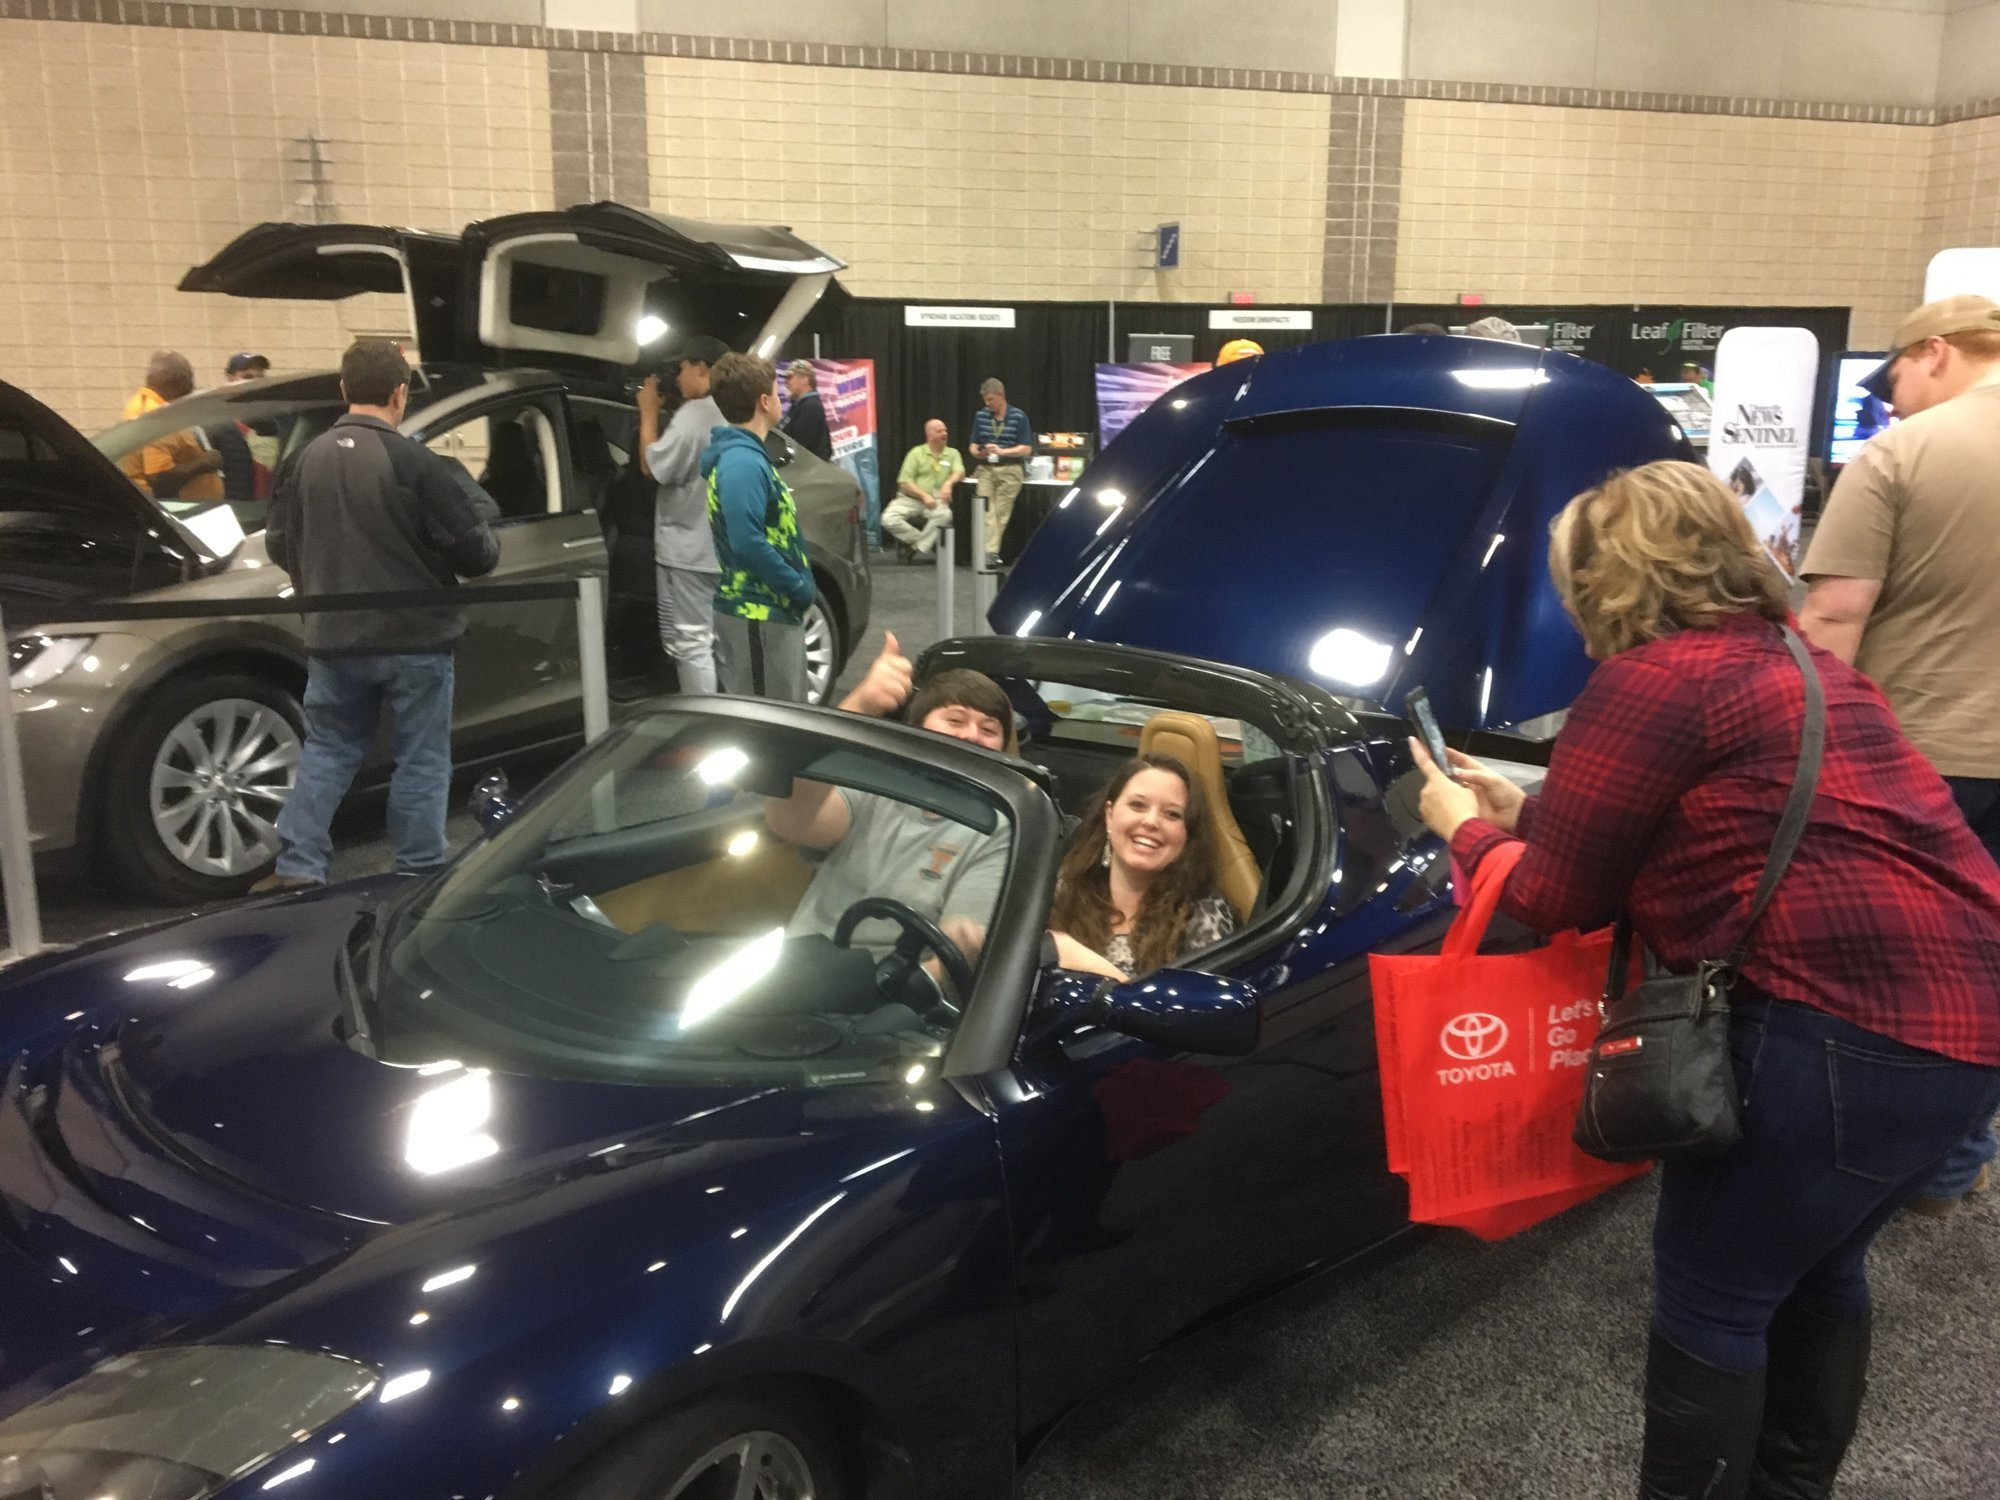 Knoxville_Auto_show (1).JPG